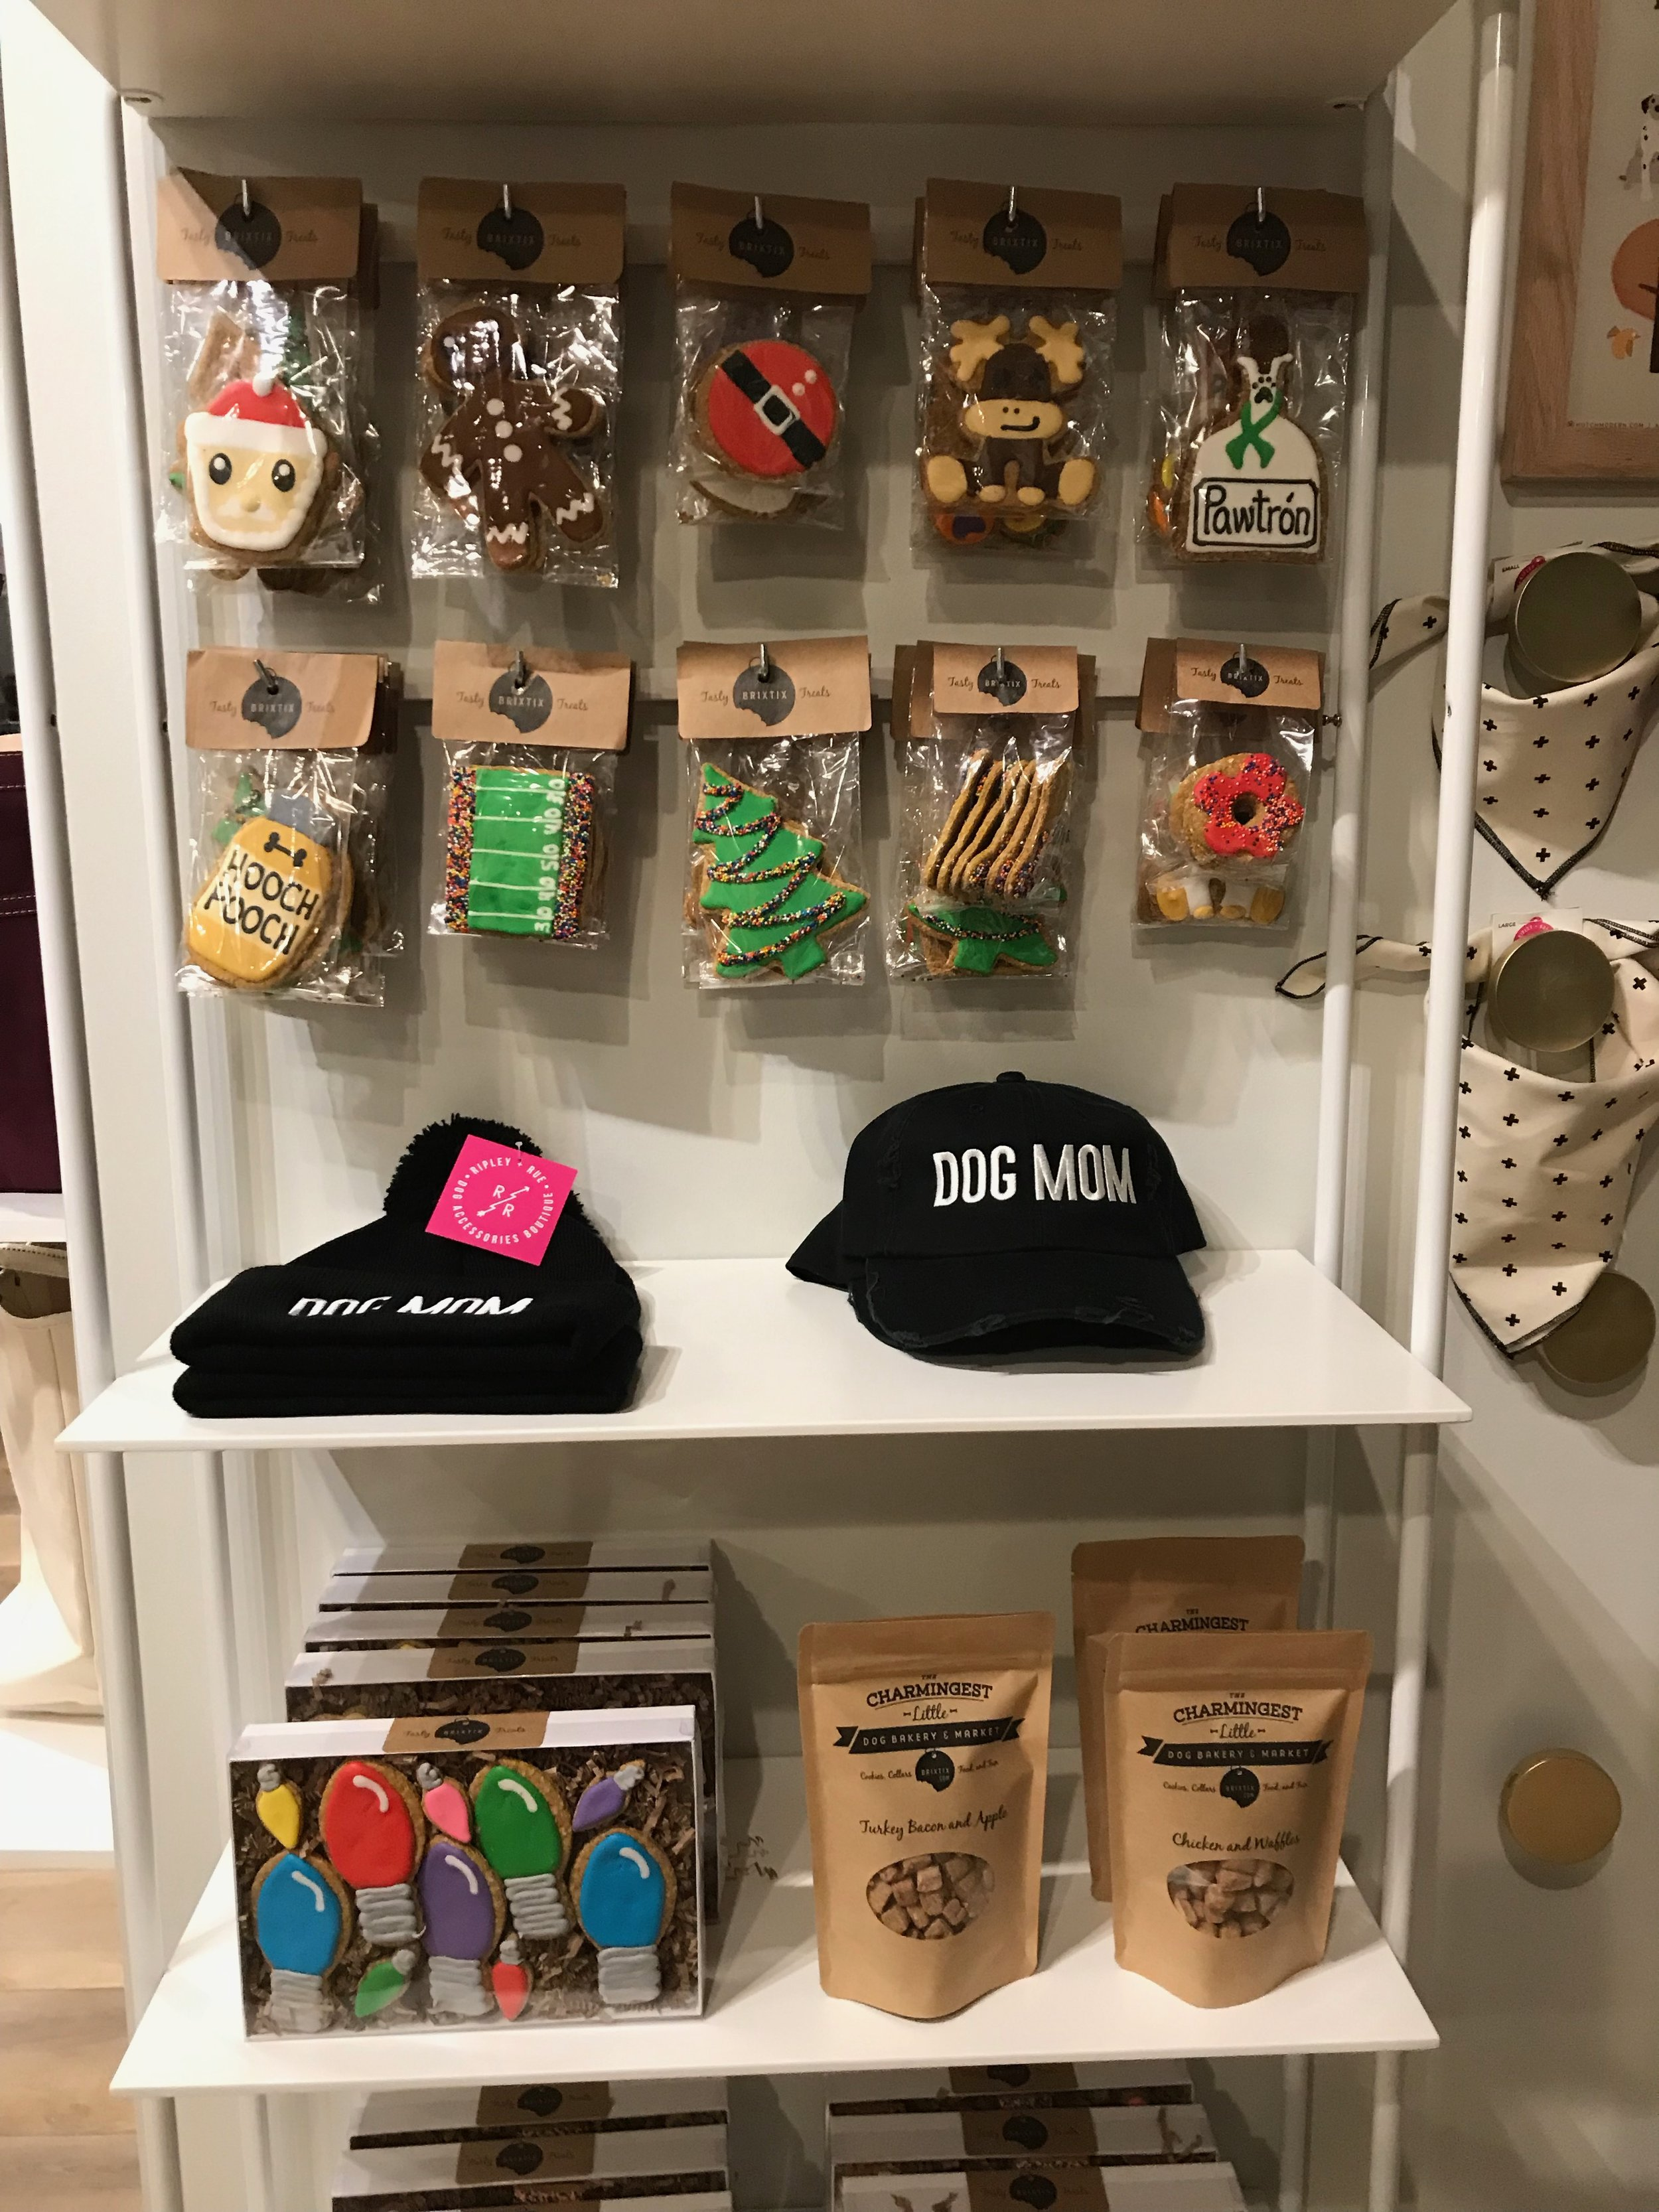 Dogs get their own section of locally (and lovingly) made biscuits, accessories and other wag swag at Made in Omaha.